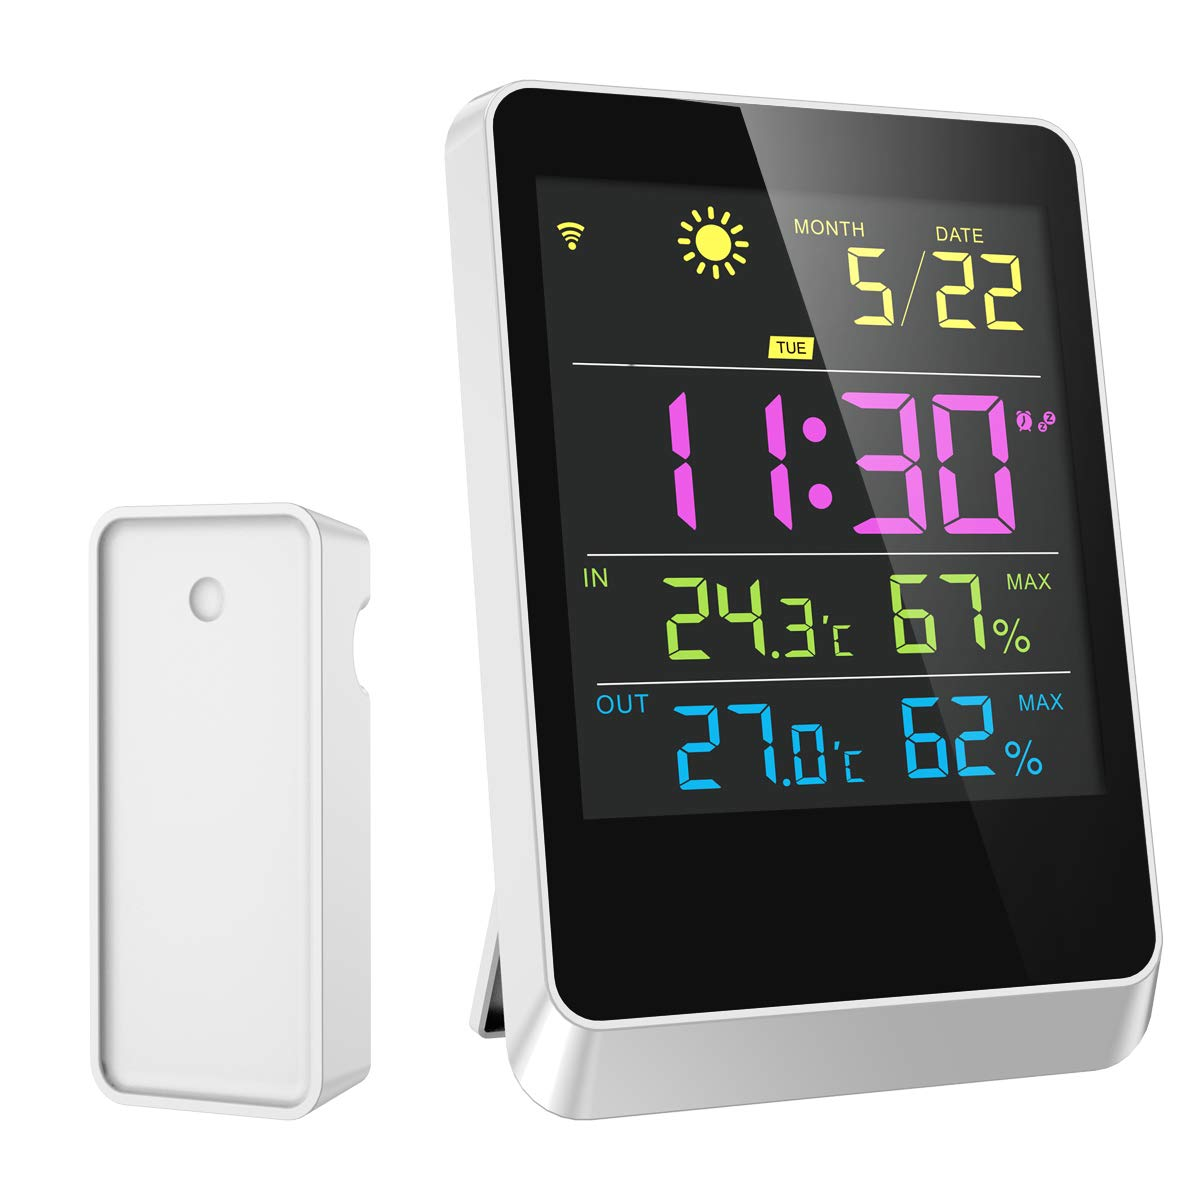 Weather Station, KeeKit Wireless Color Forecast Station with Temperature, Humidity & Clock, Date, Indoor Outdoor Hygrometer Thermometer, Alarm Clock & Snooze Function for Home, Office, School, Bedroom